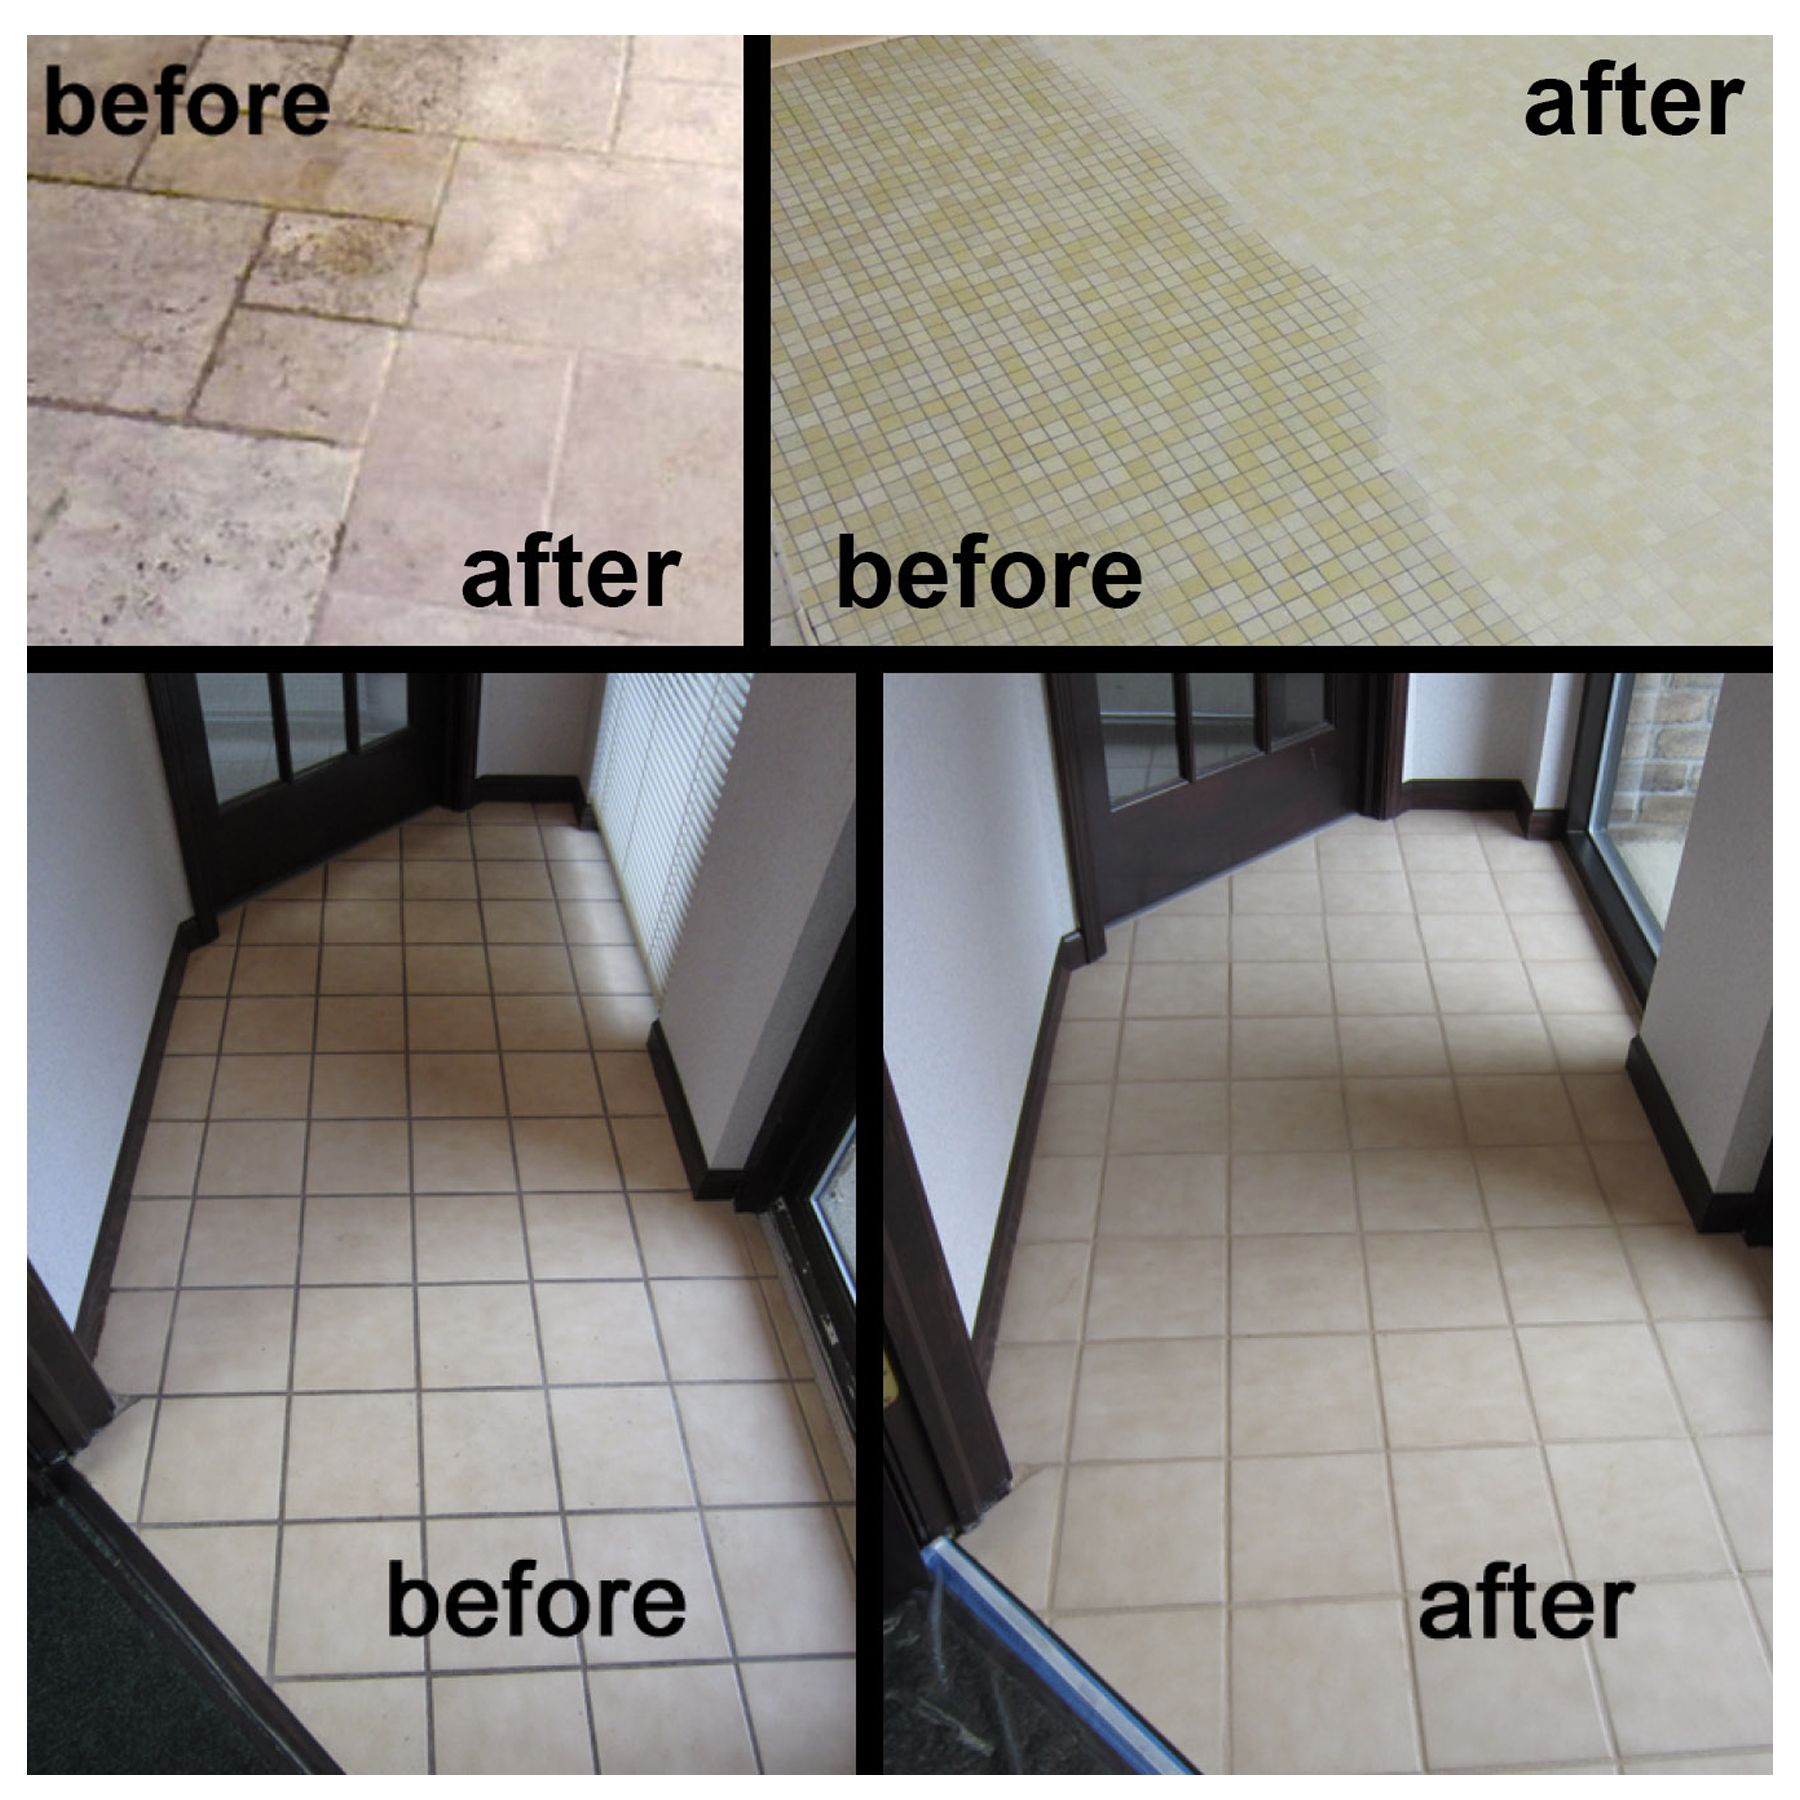 Dont overlook the grout on your tile floor the first impression dont overlook the grout on your tile floor the first impression guests perceive dailygadgetfo Choice Image